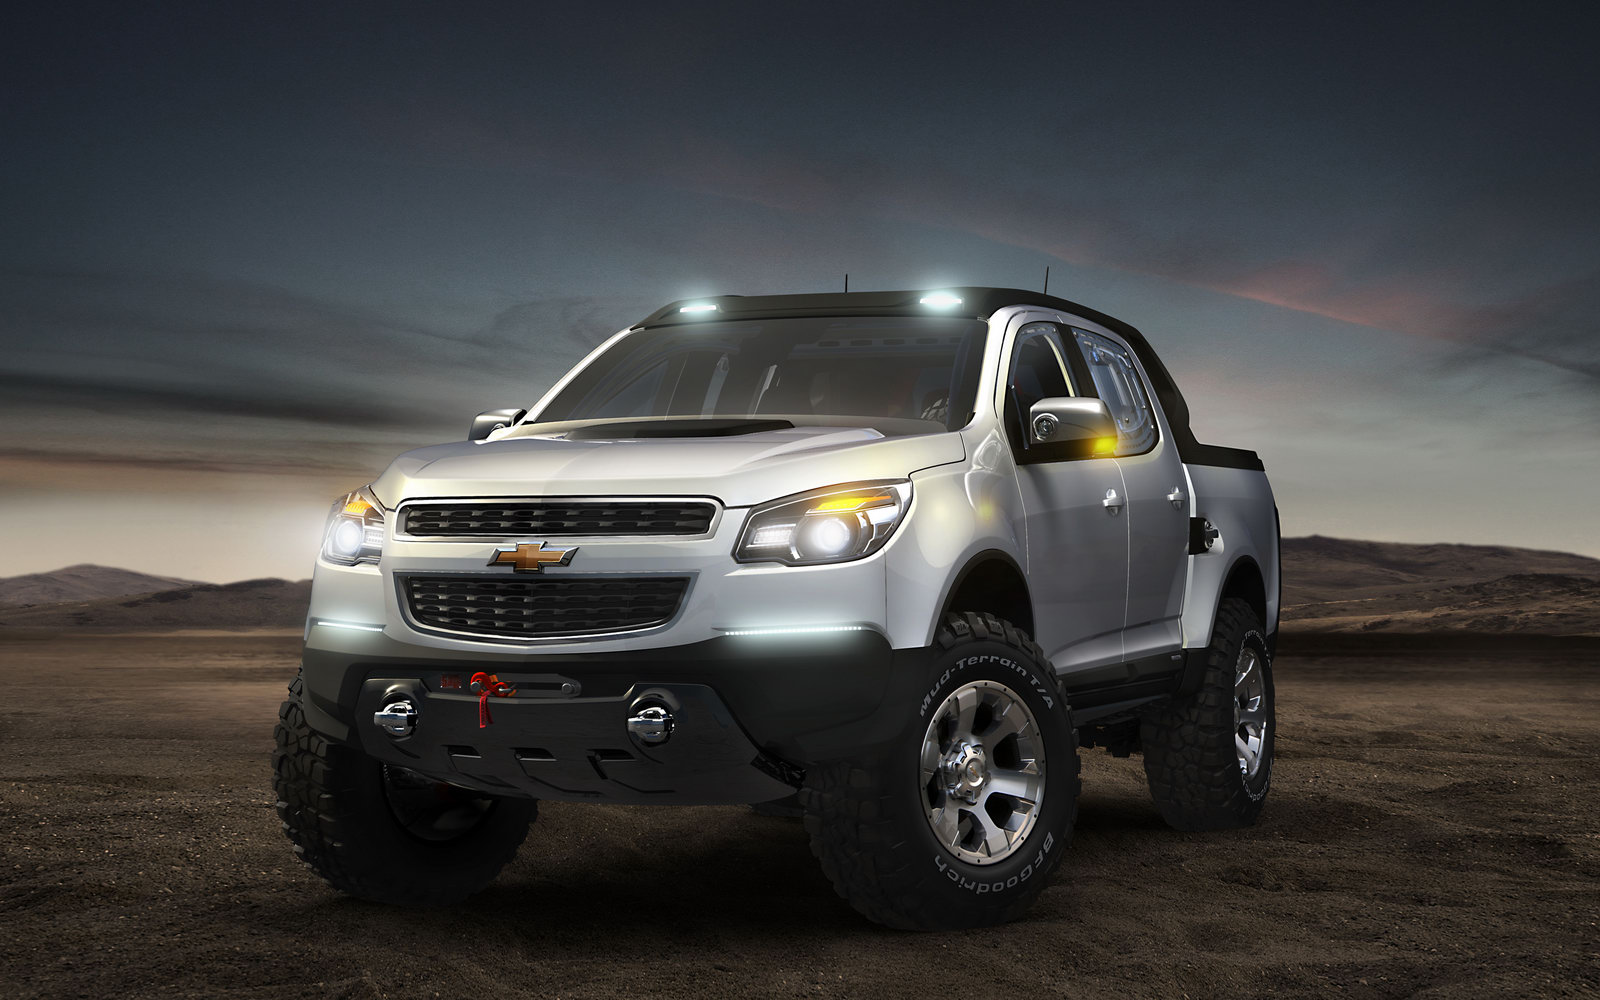 Chevrolet Colorado Double Cab Rally Concept 3 New Chevrolet Colorado with Double Cab Rally Concept –Review